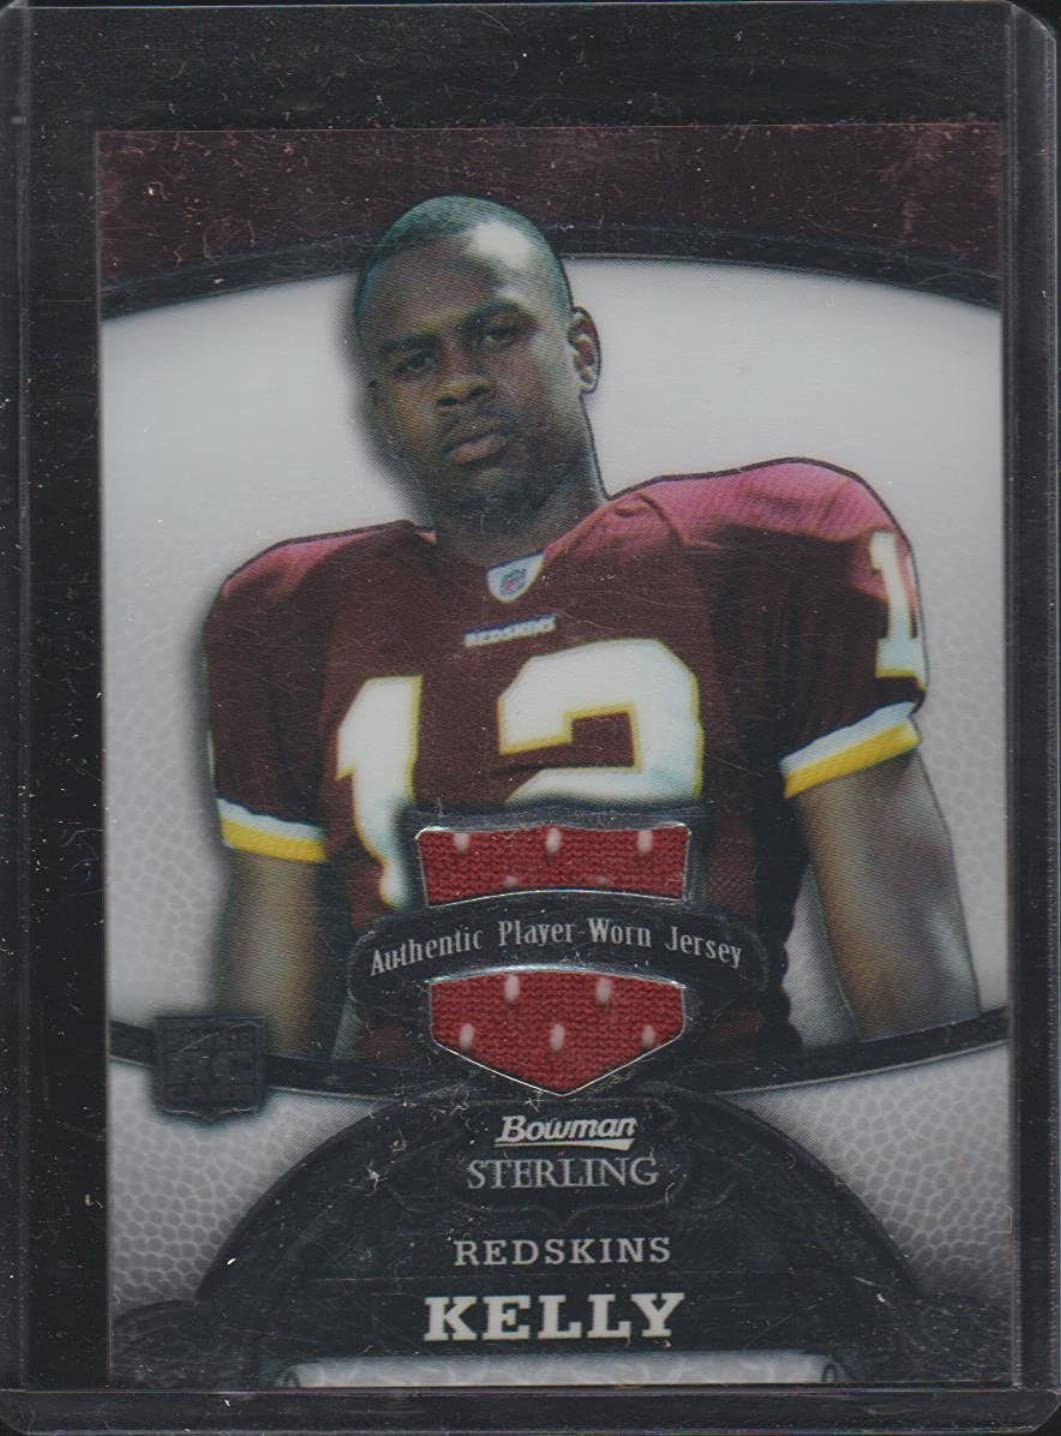 2008 Bowman Sterling Malcolm Kelly Redskins 60/569 Rookie Jersey Football Card #162